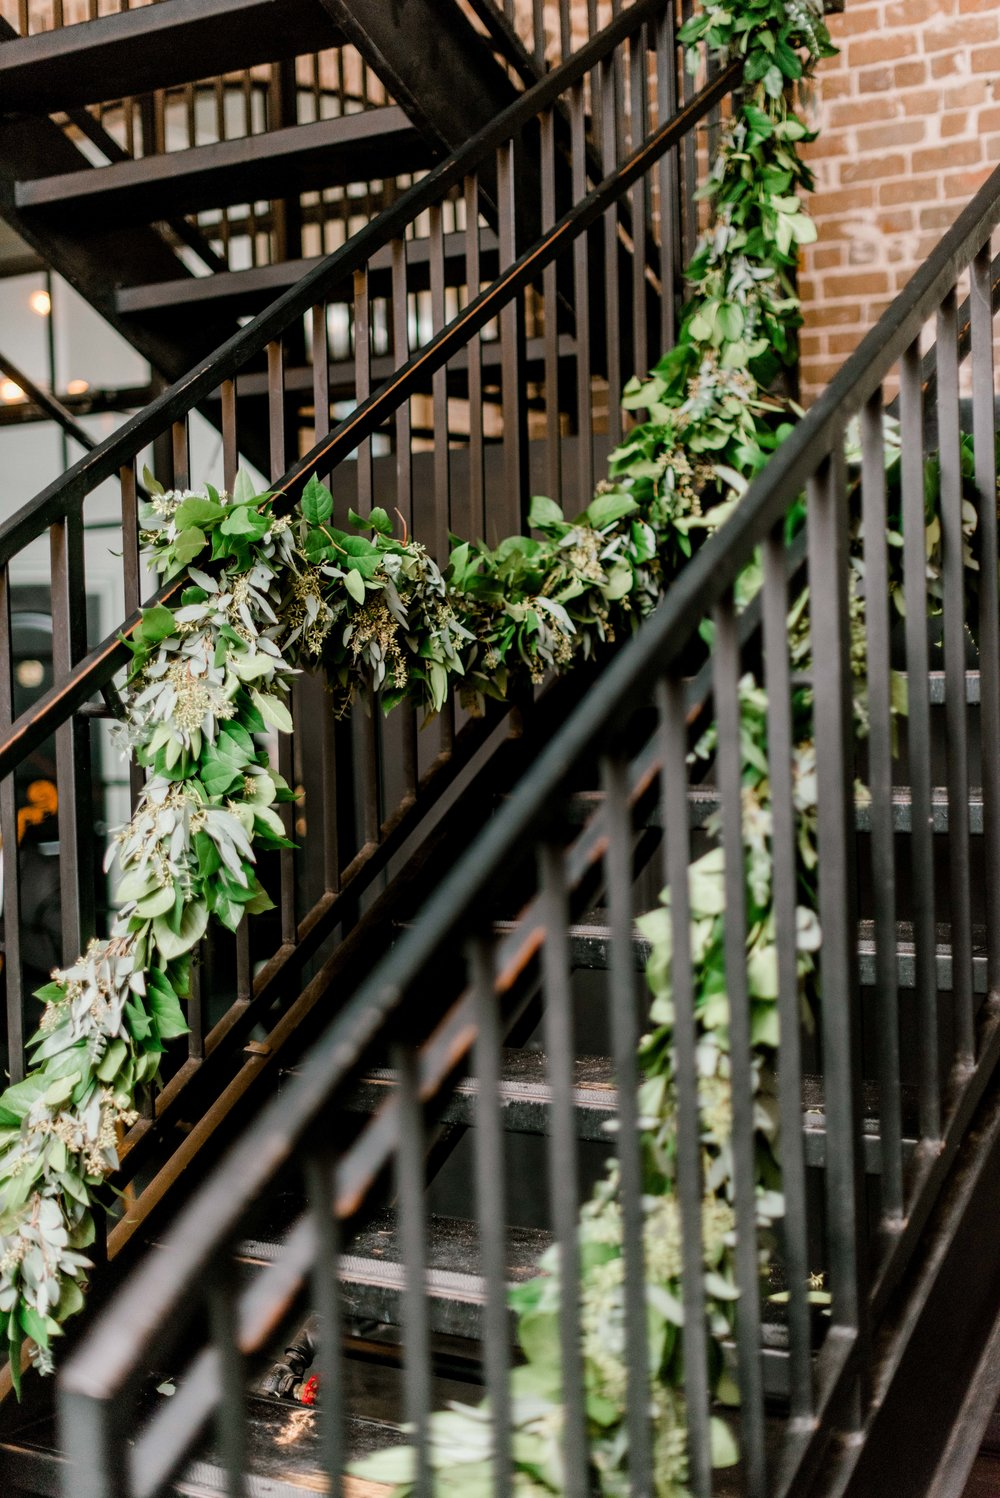 A little touch of greenery added to our stairs.